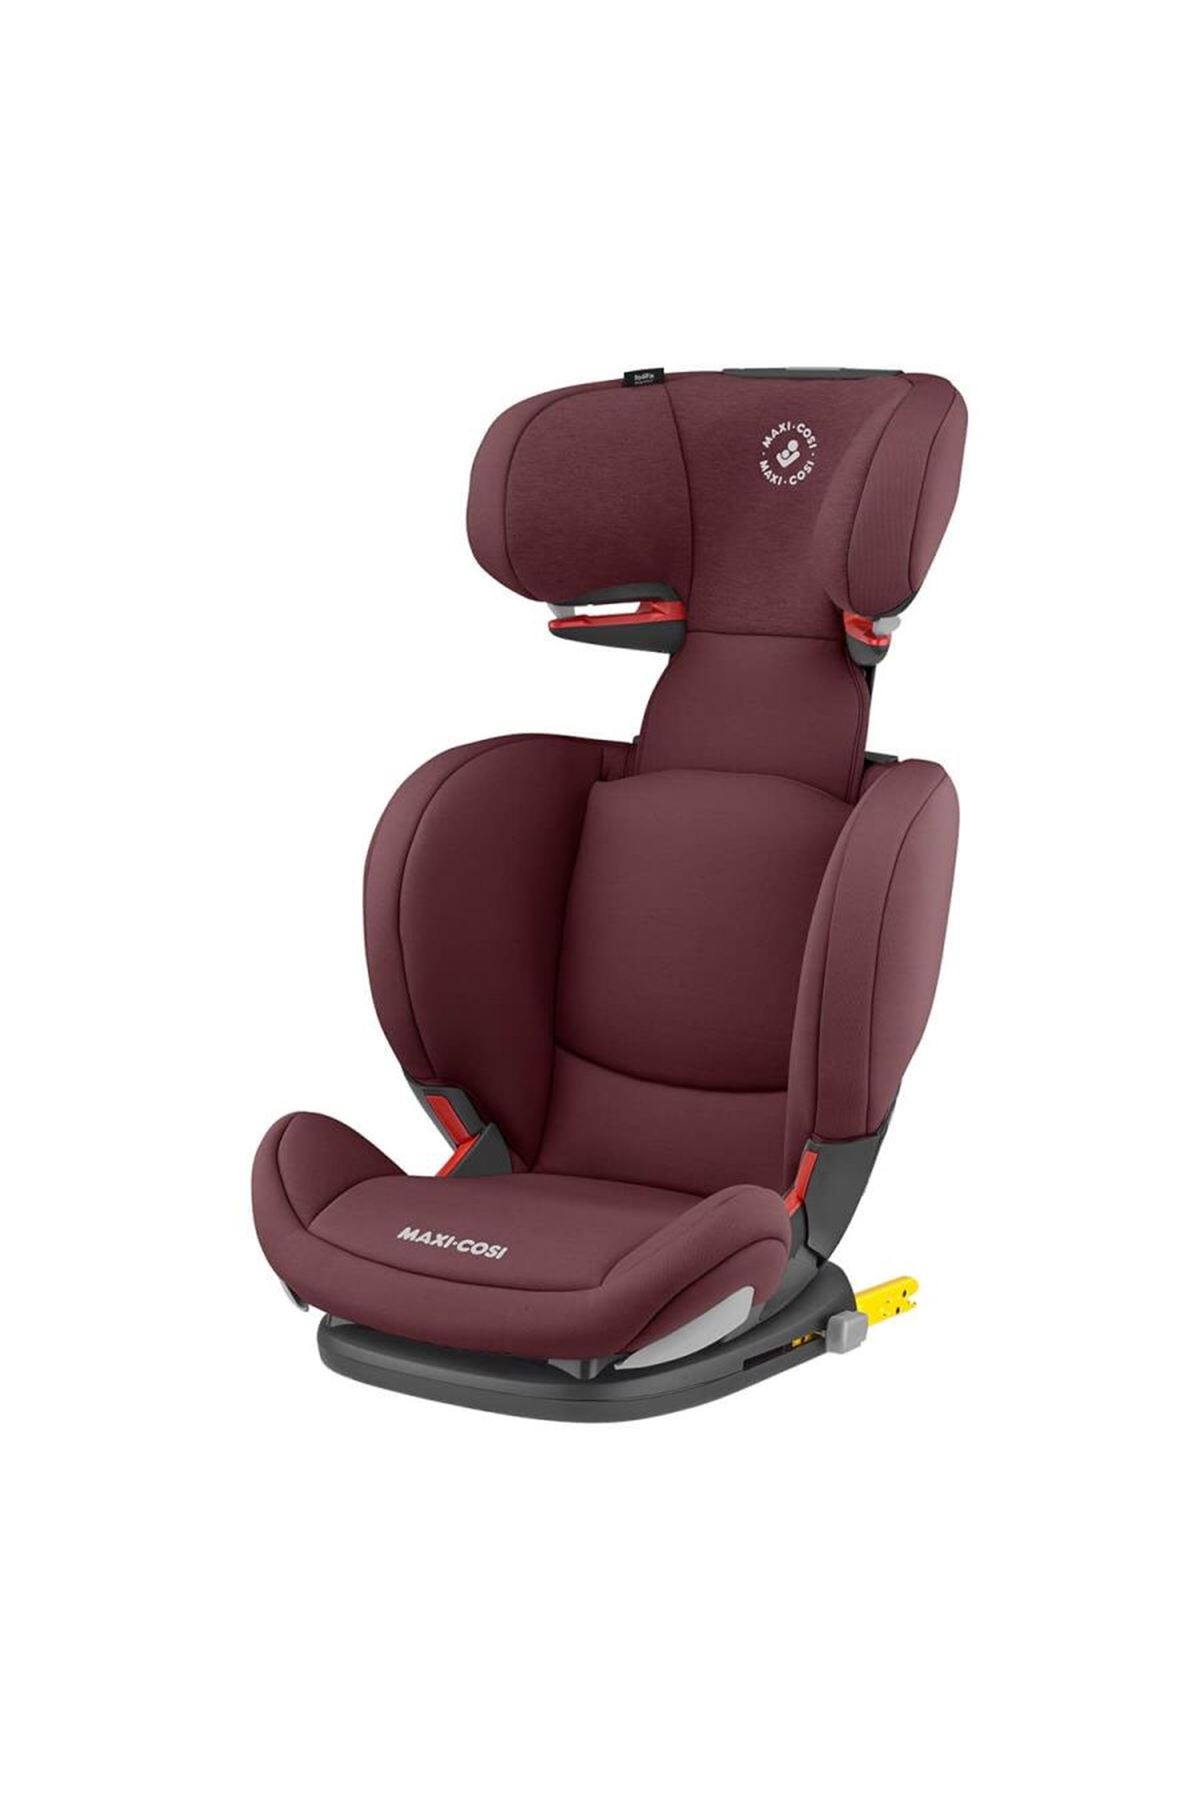 Maxi-Cosi Rodifix AirProtect / Authentic Red